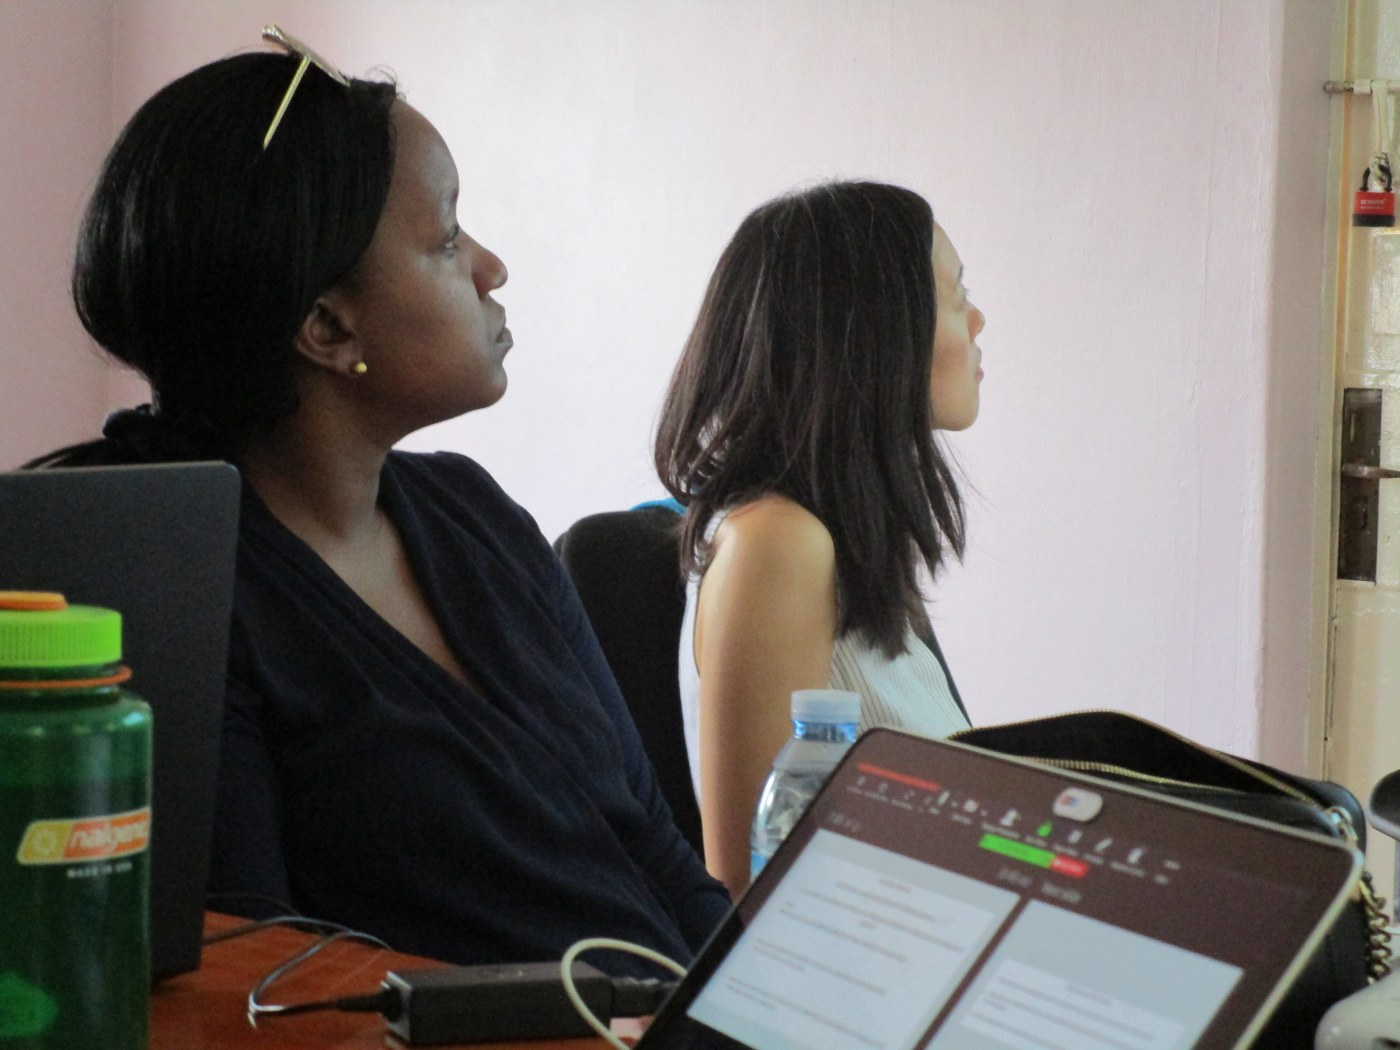 NGN members Drs. Christine Ngaruiya and Evelyn Hsieh, listening to a presentation of data by NGN fellow Sarah Moor (YSM '22).